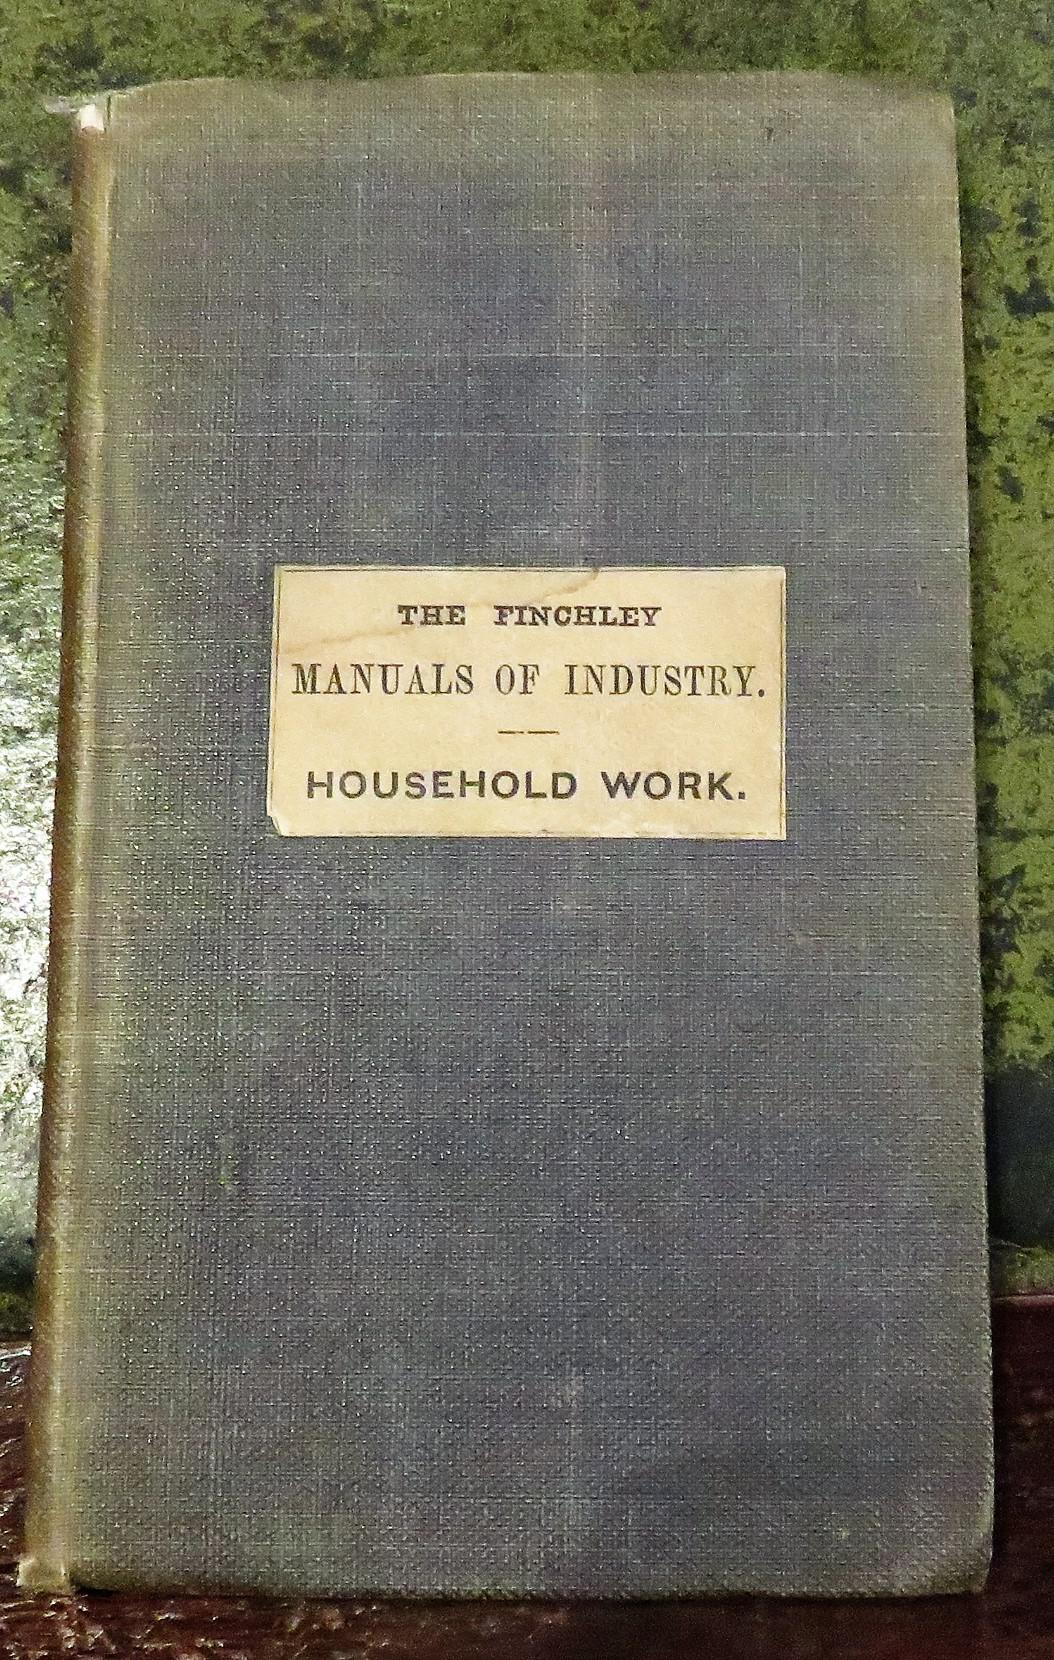 The Finchley Manuals of Industry No III Household Work; or, The Duties of Female Servants